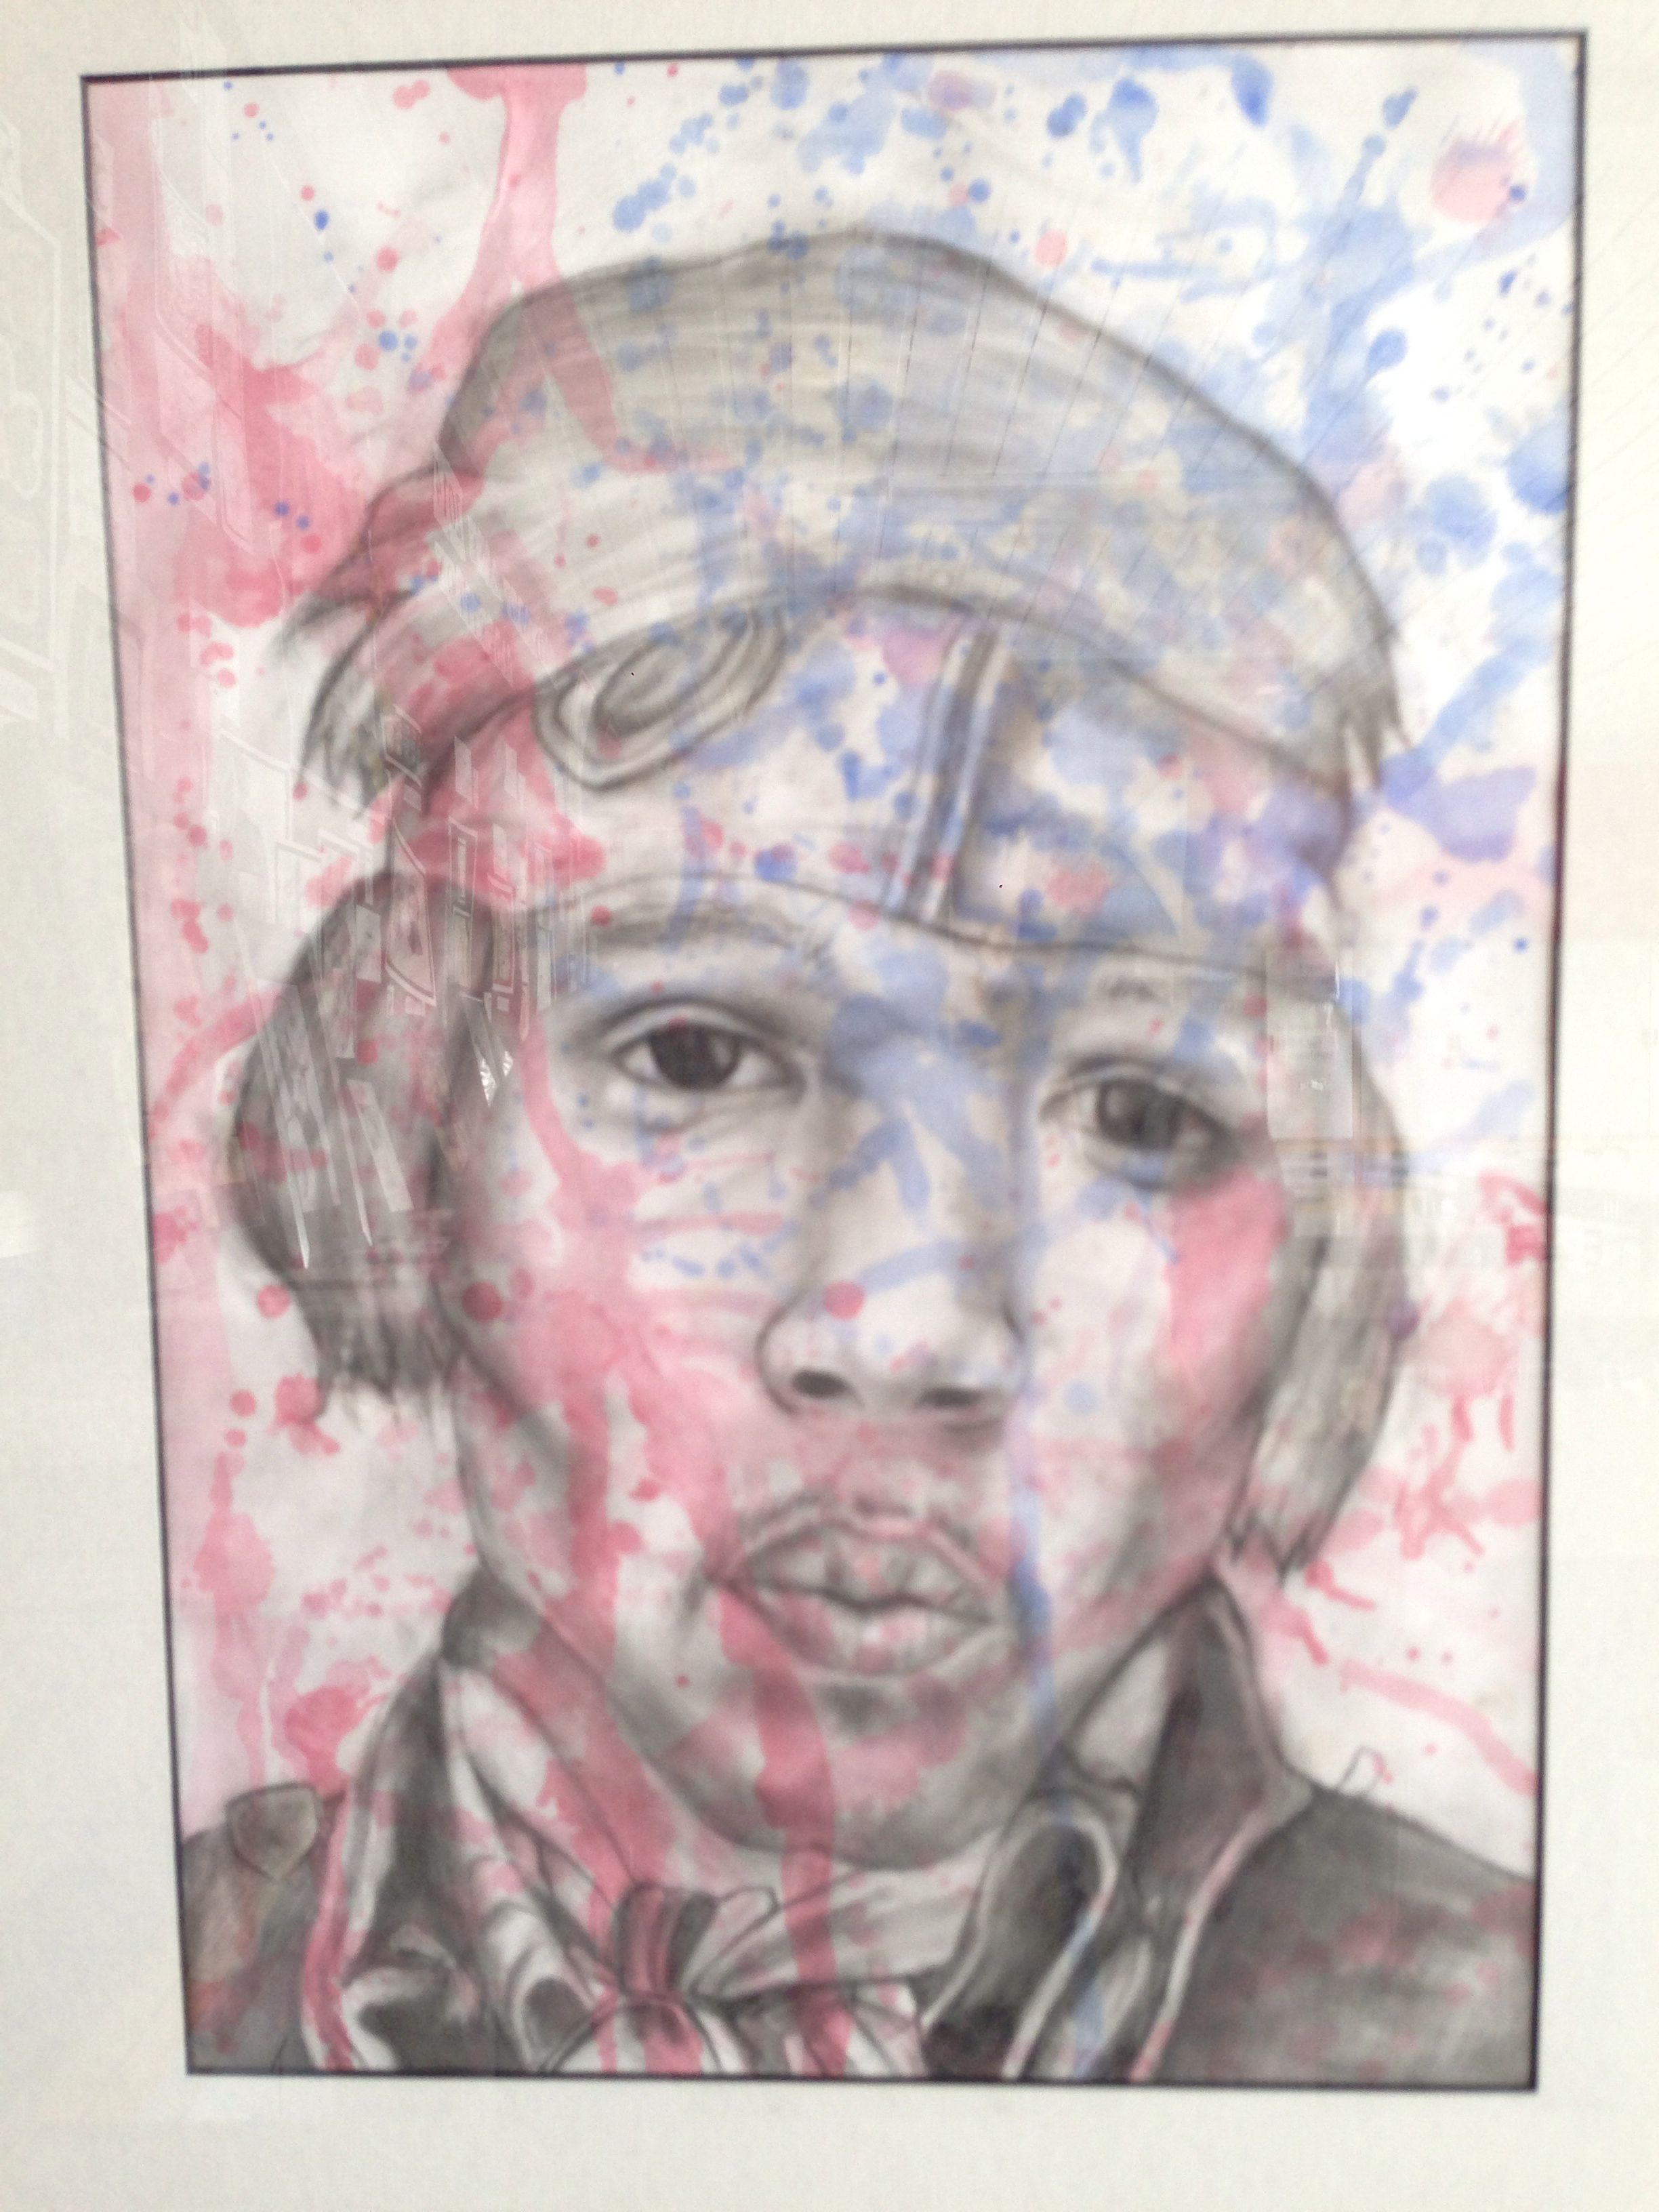 Year 10 RBA entry 2014, selected for exhibition. Pencil and watercolour.